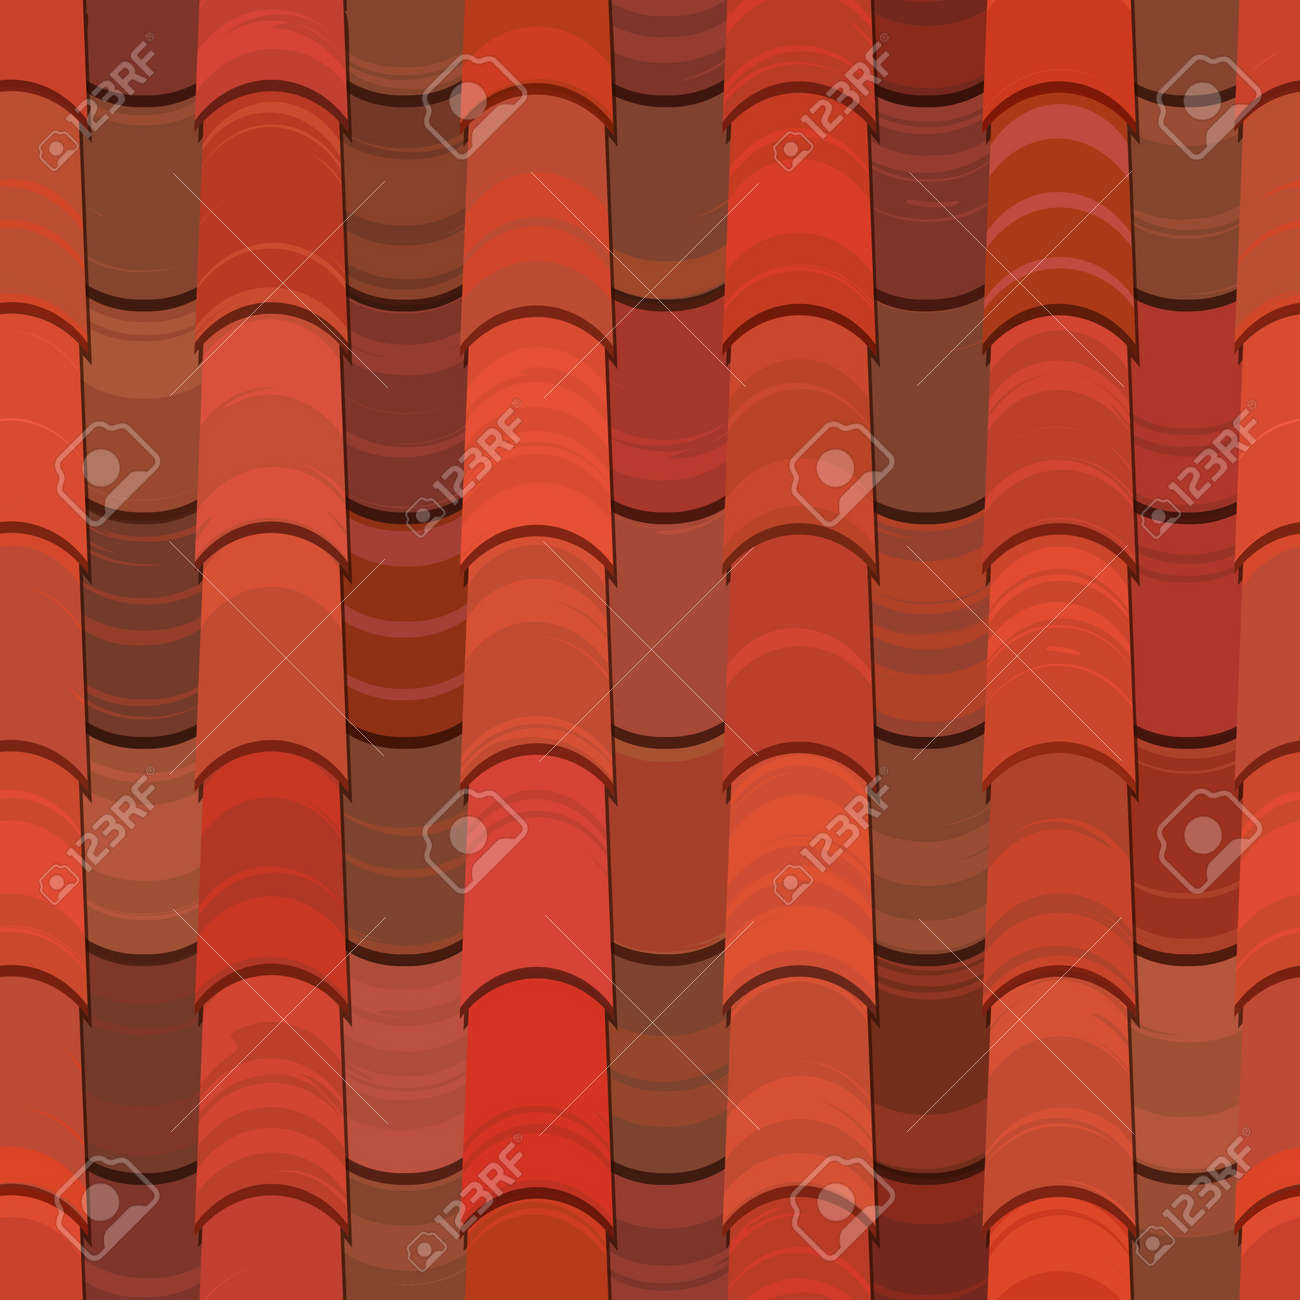 Red Clay Ceramic Roof Tiles Seamless Texture Stock Vector   13551600